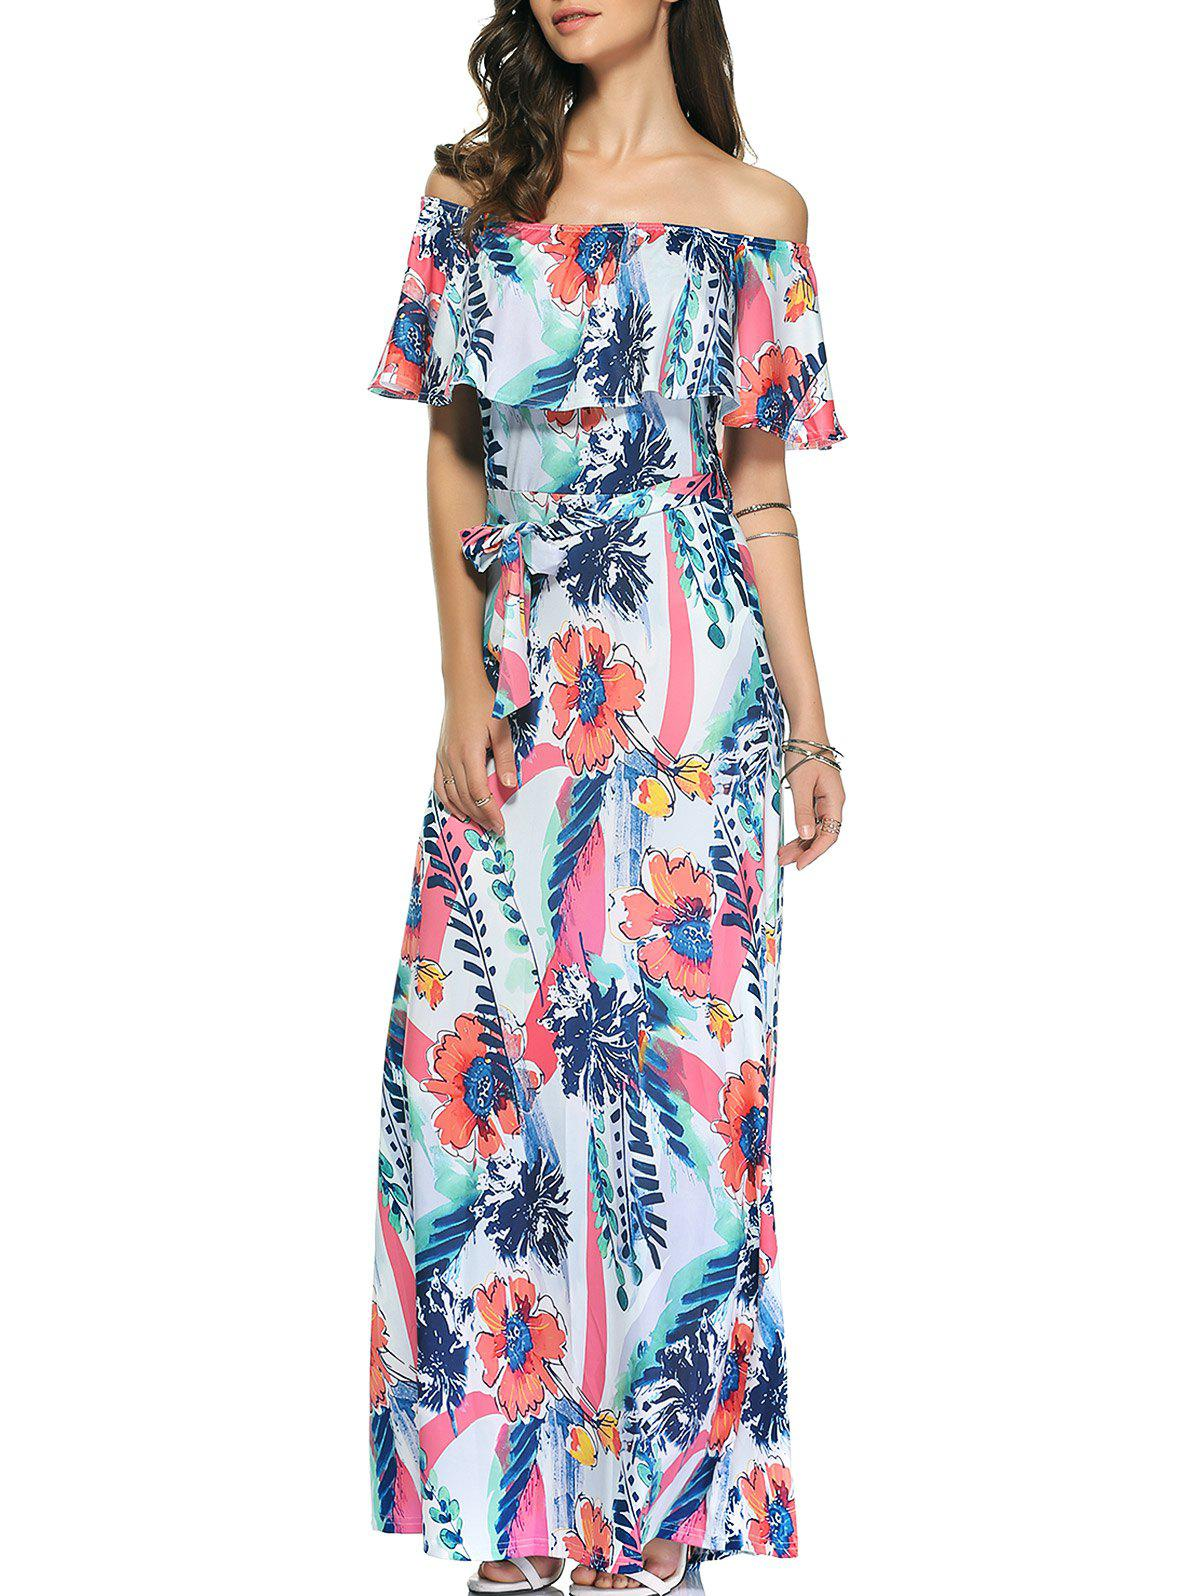 Chic Flounce Off The Shoulder Bowknot Tie Belted Floral Dress For Women